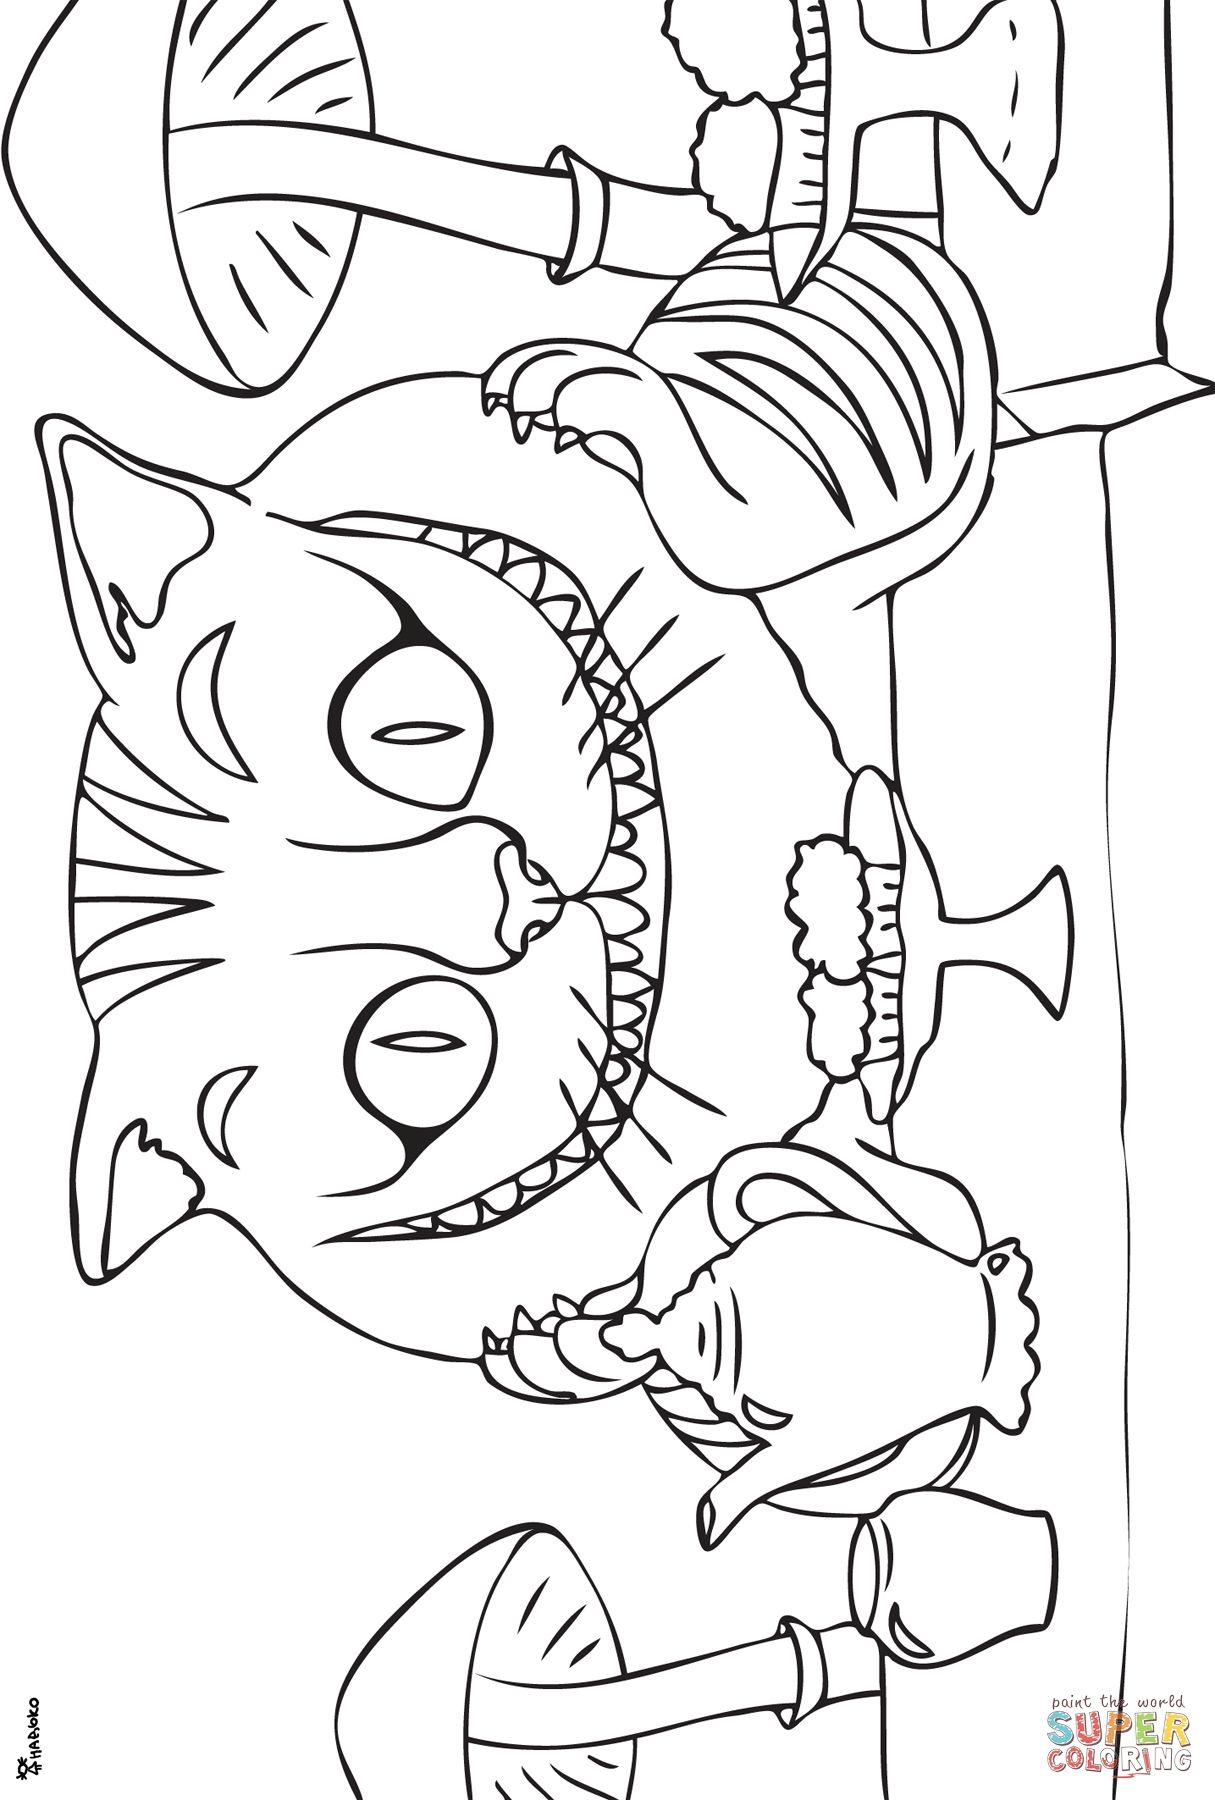 Cheshire Cat Coloring Page Free Printable Coloring Pages Cat